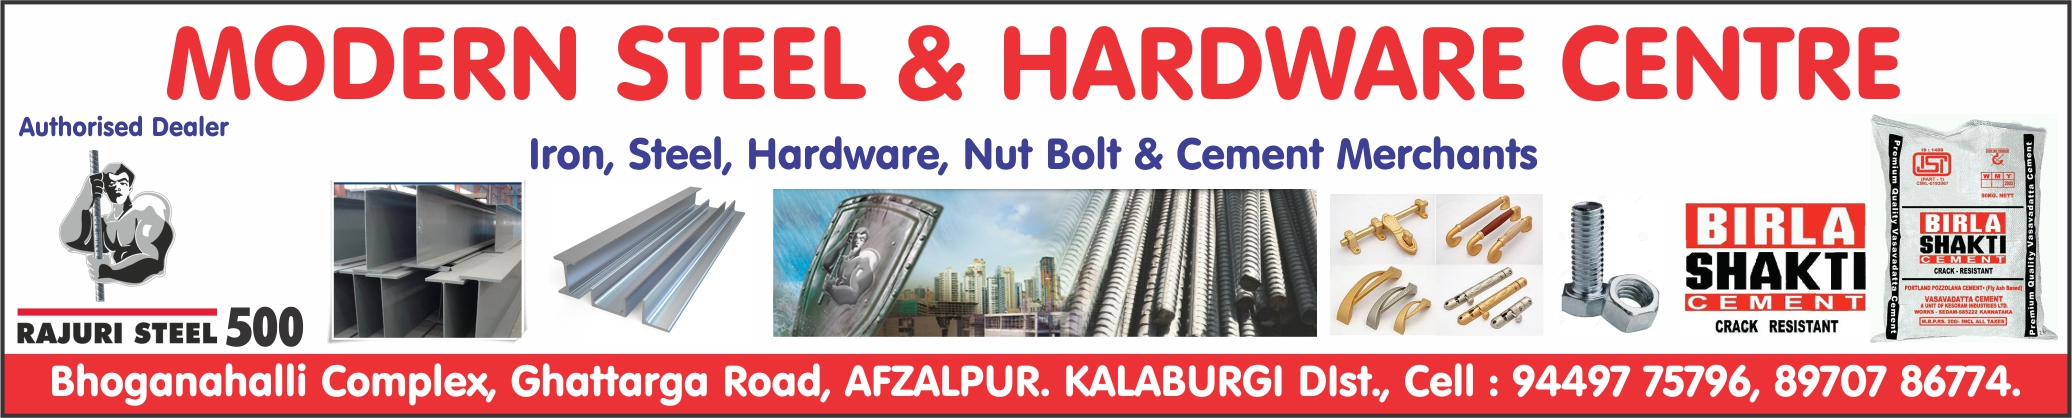 Modern Steel & Hardware Centre